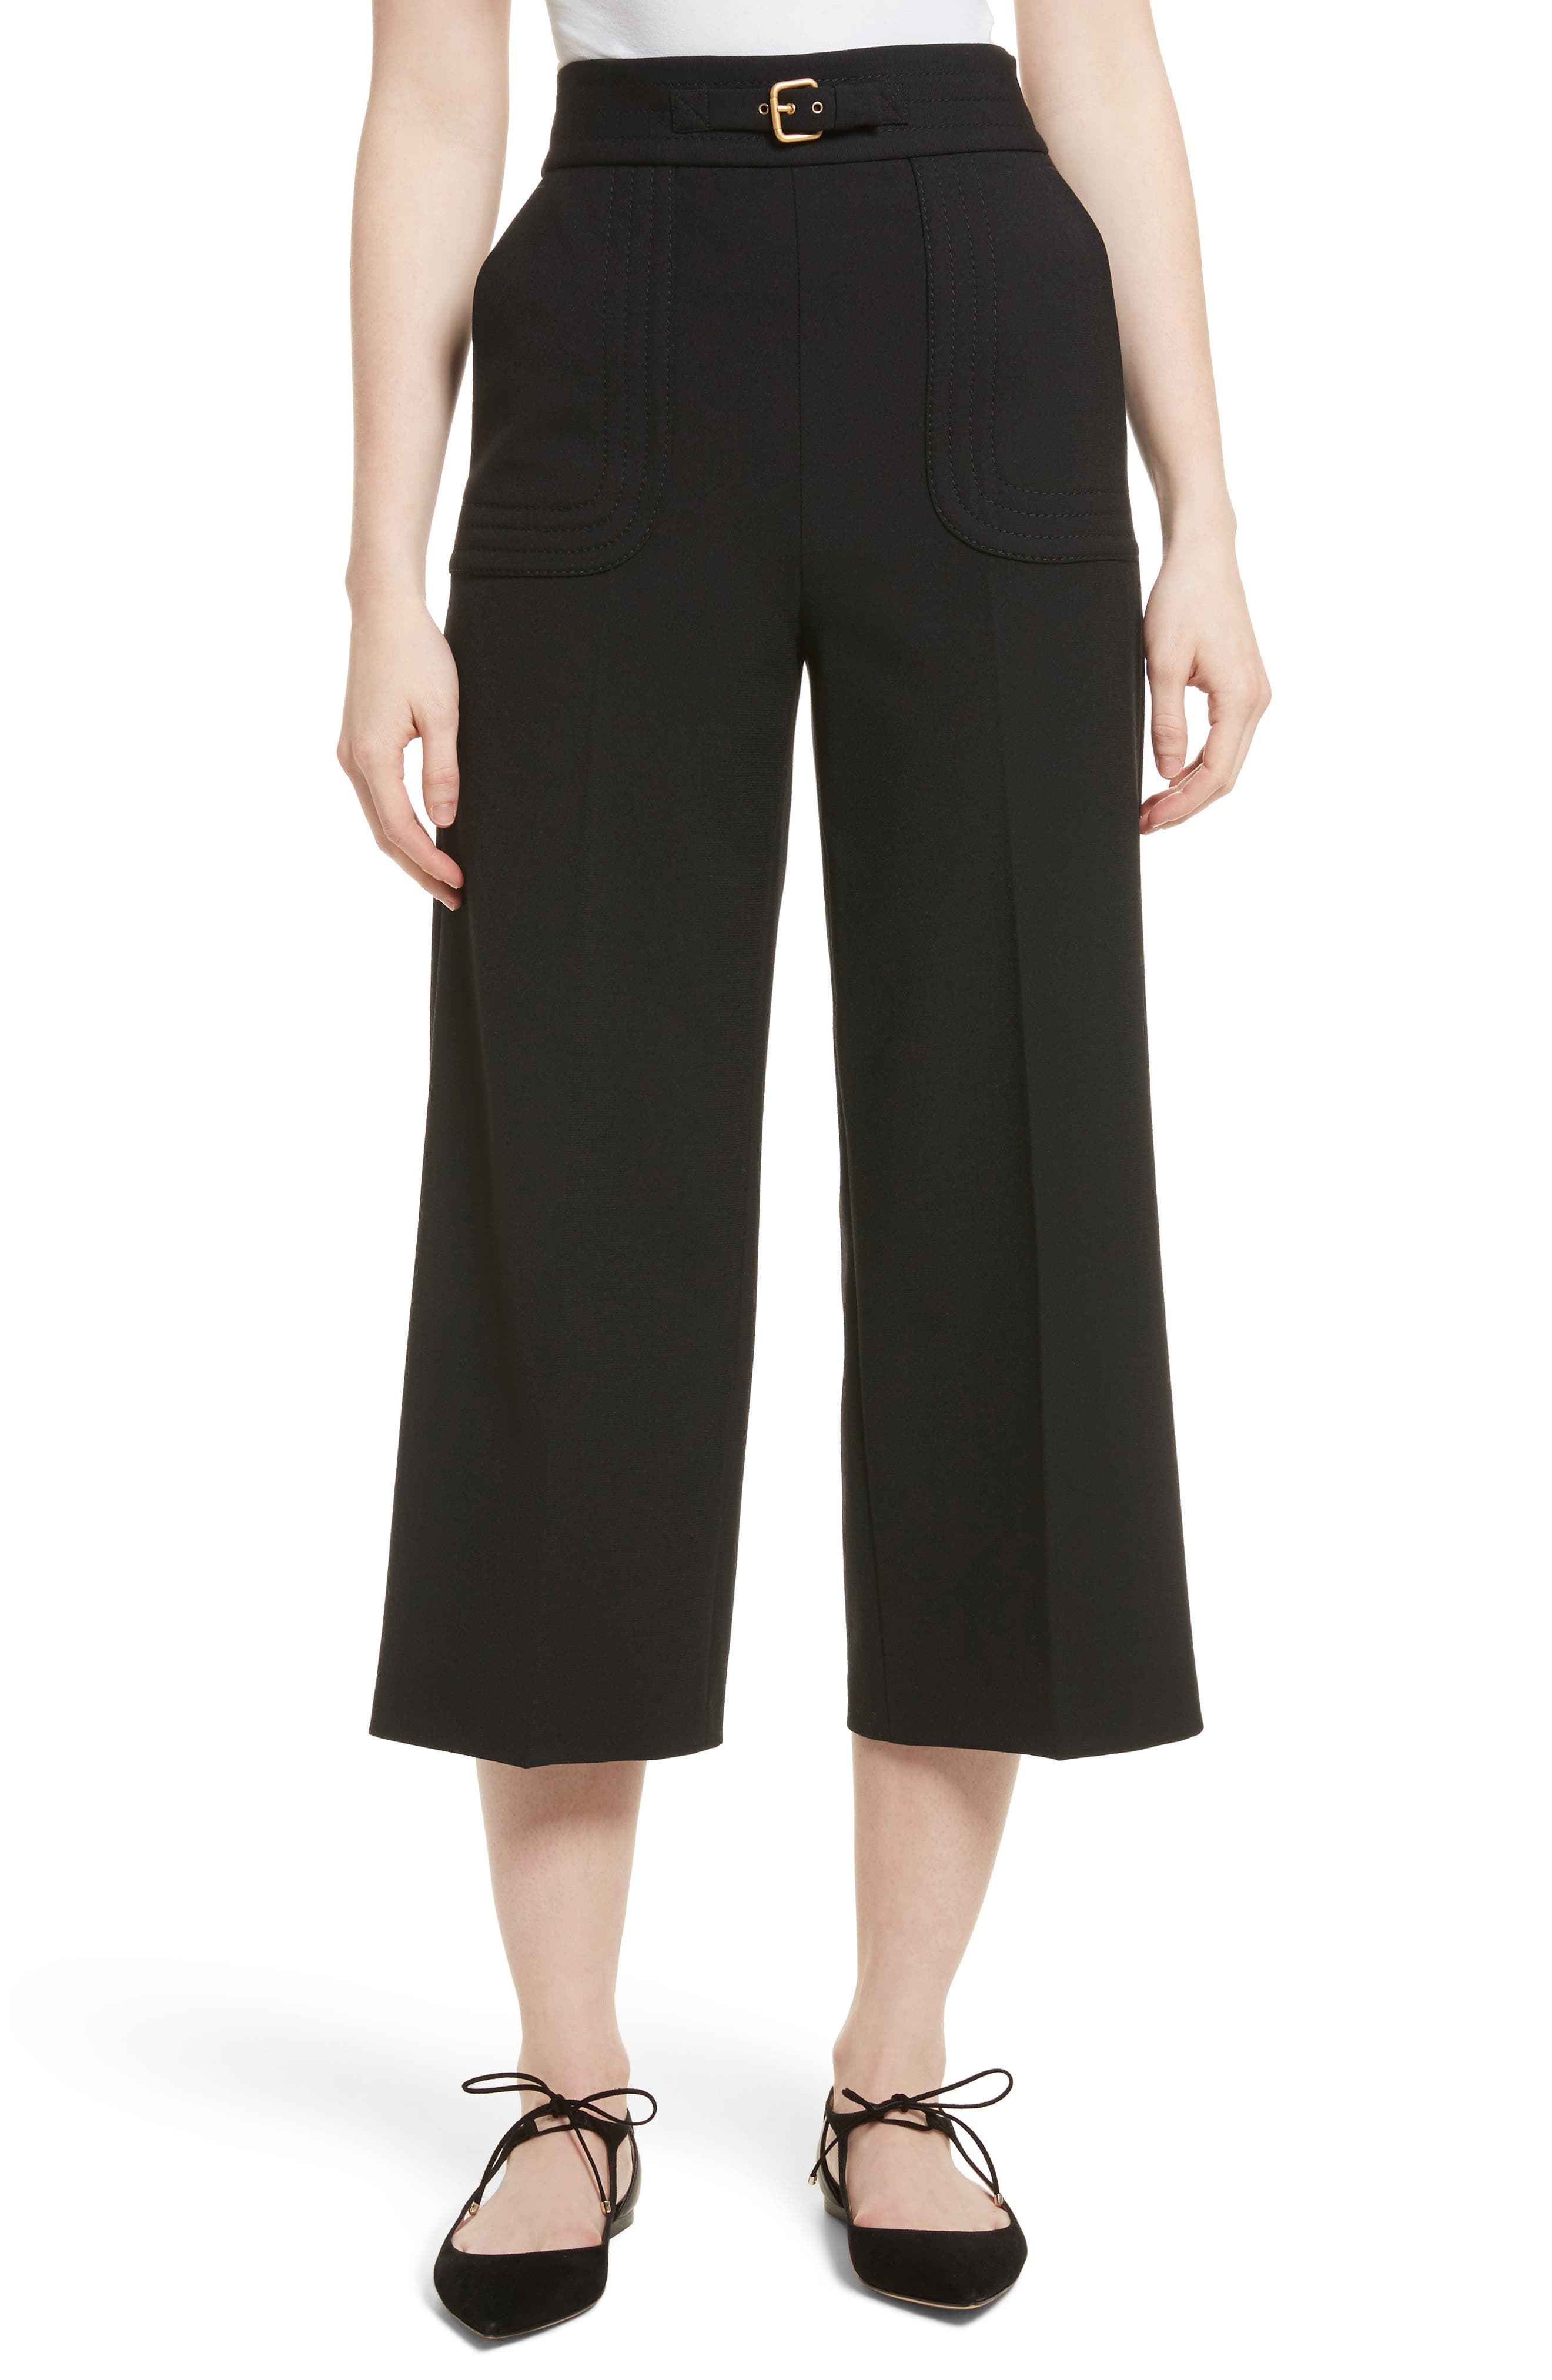 Alternate Image 1 Selected - RED Valentino Belt Detail Culottes